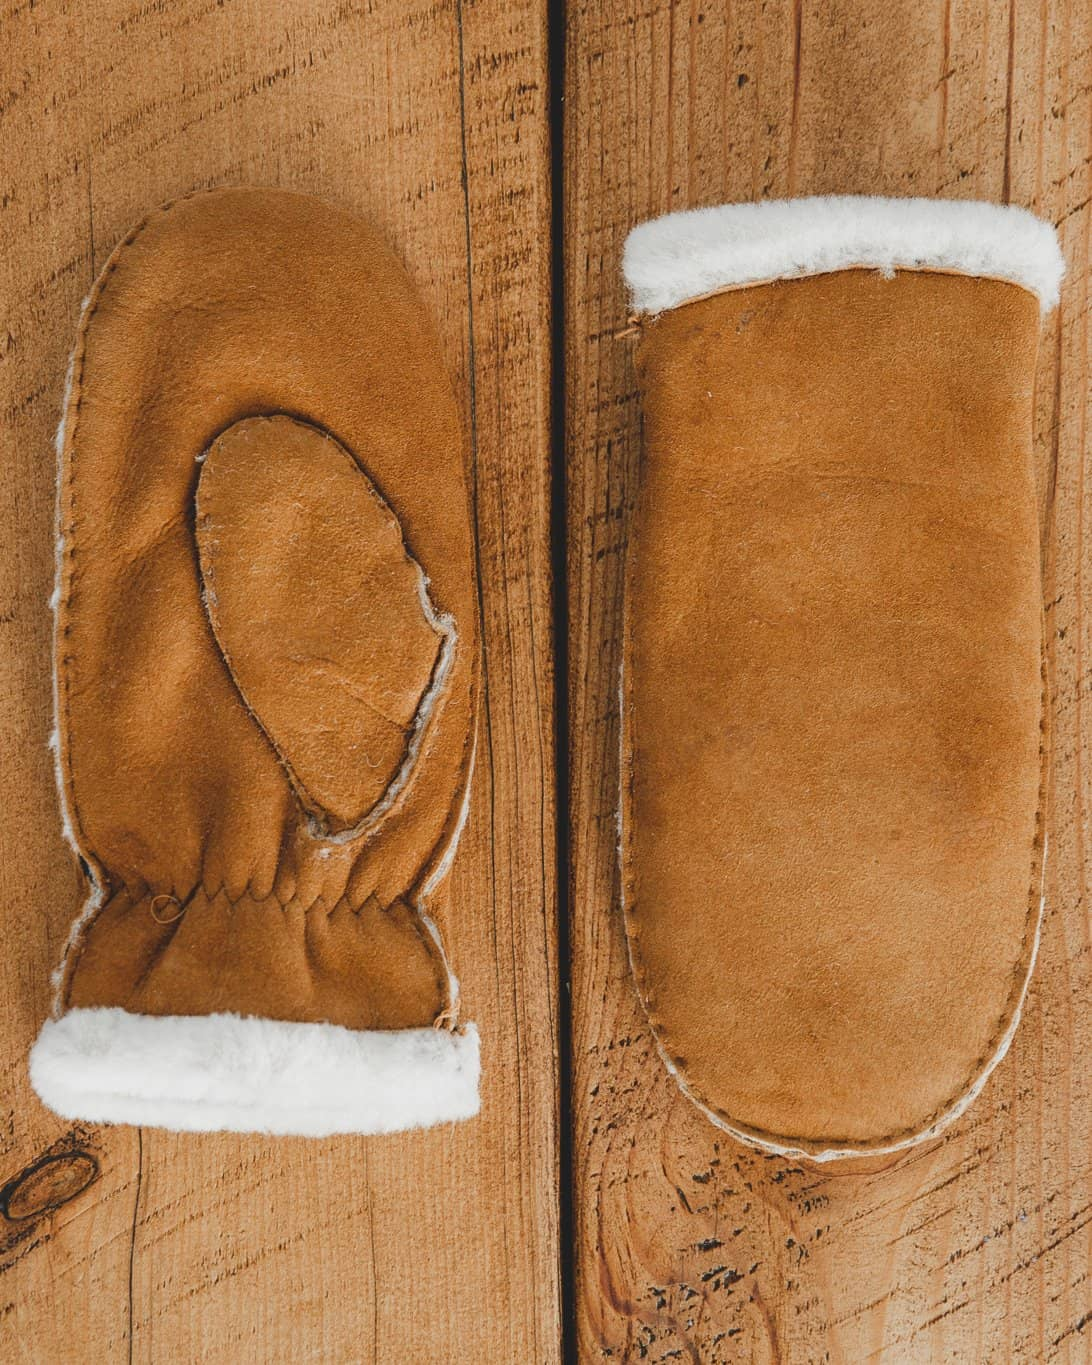 Nordvek womens sheepskin mittens 320-100 london tan on wooden floor